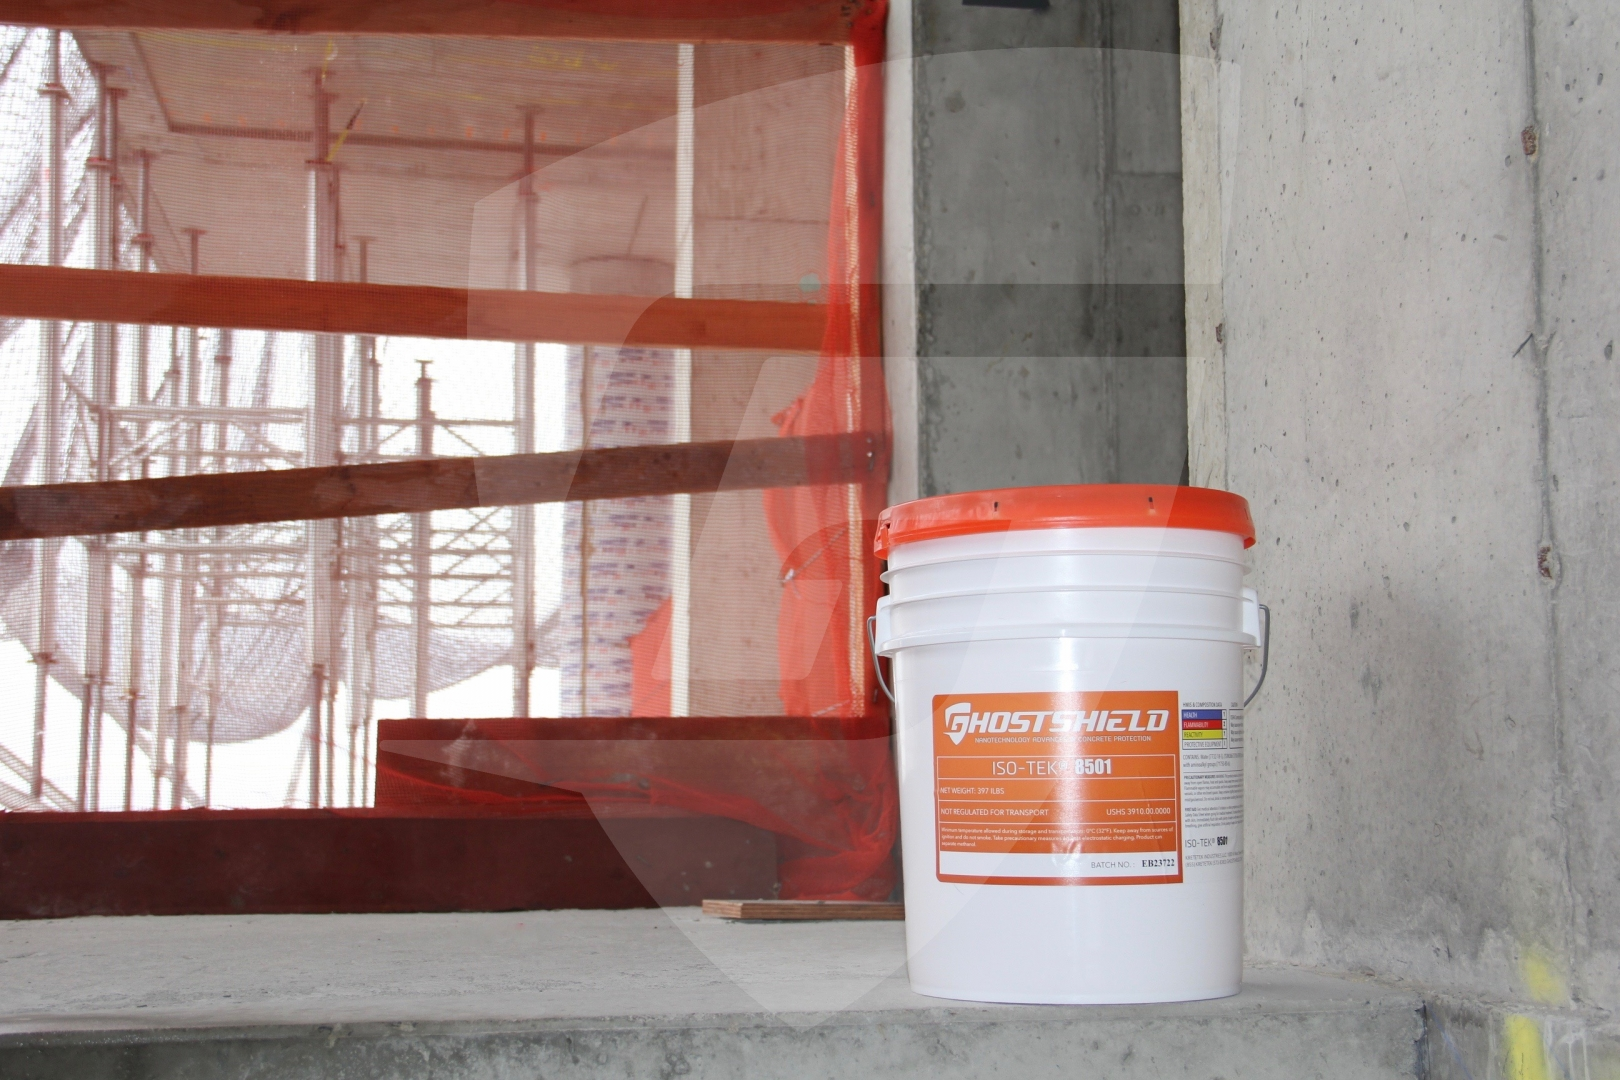 Ghostshield Iso-Tek 8501 Concrete Sealer